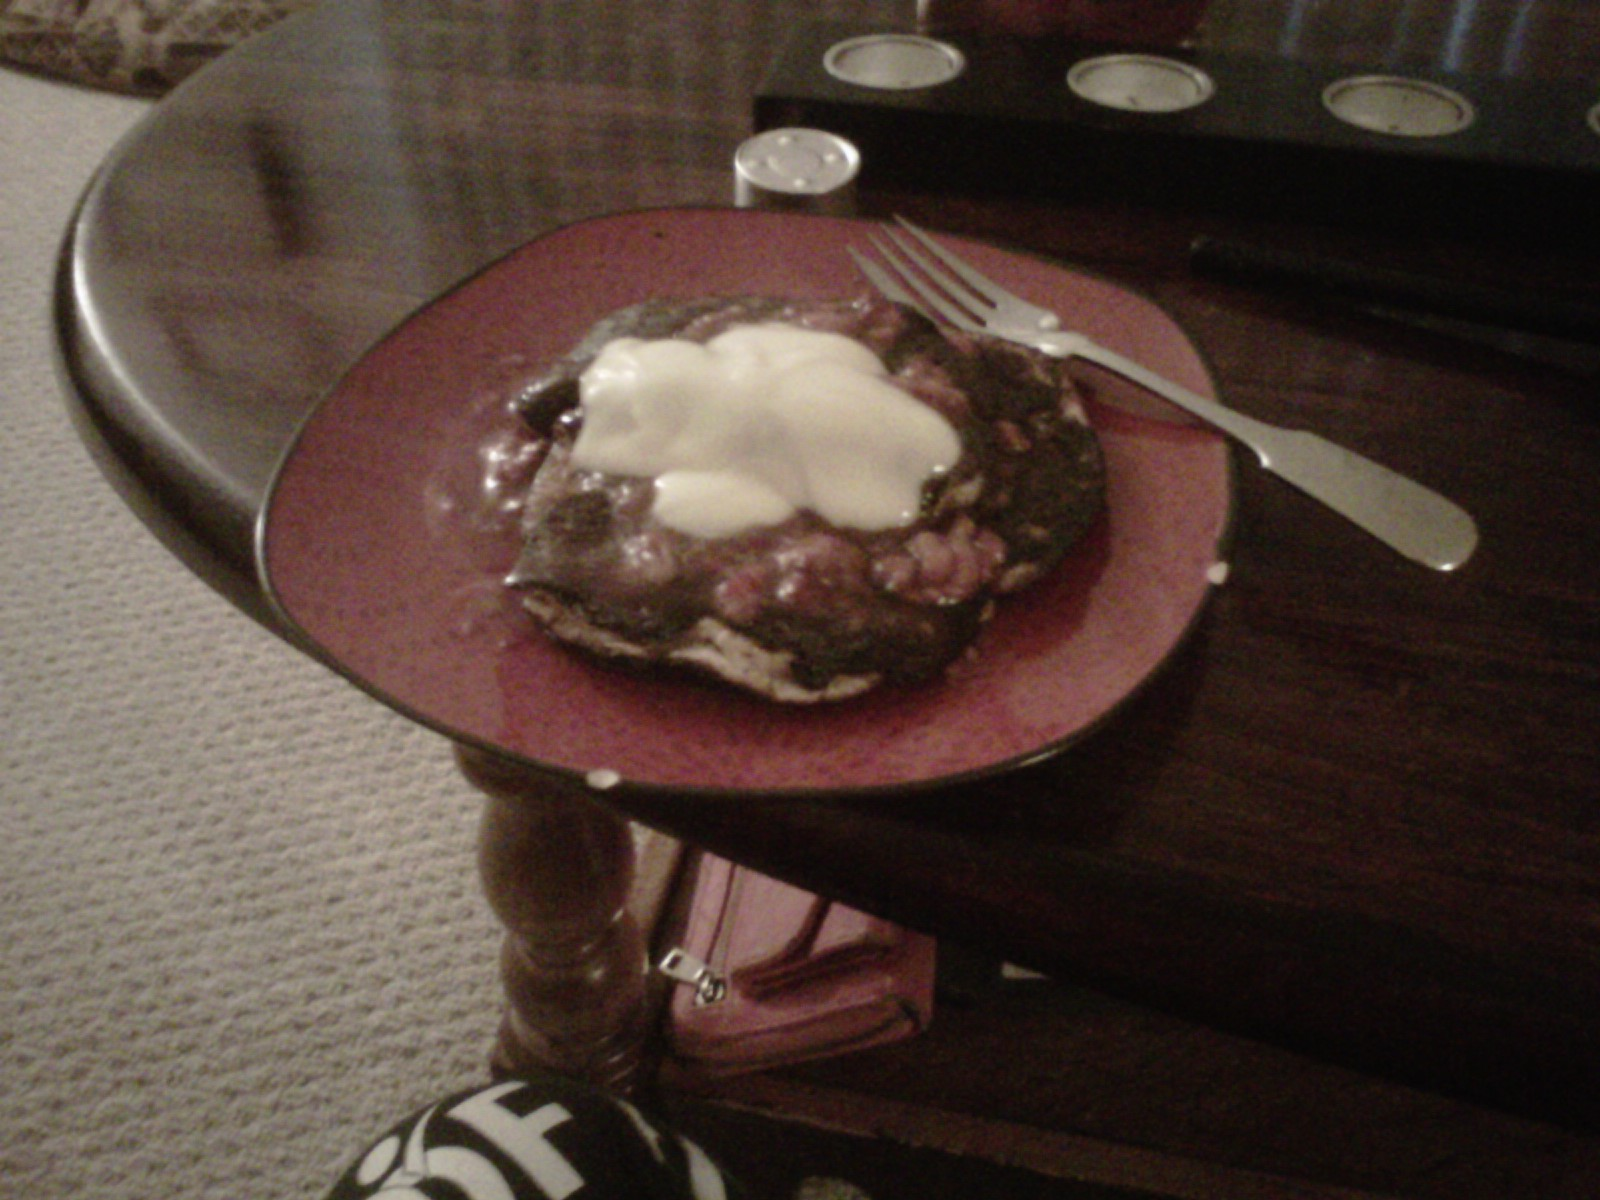 ... Month: Almond Griddle Cakes with Cranberry Syrup - State of Fitness